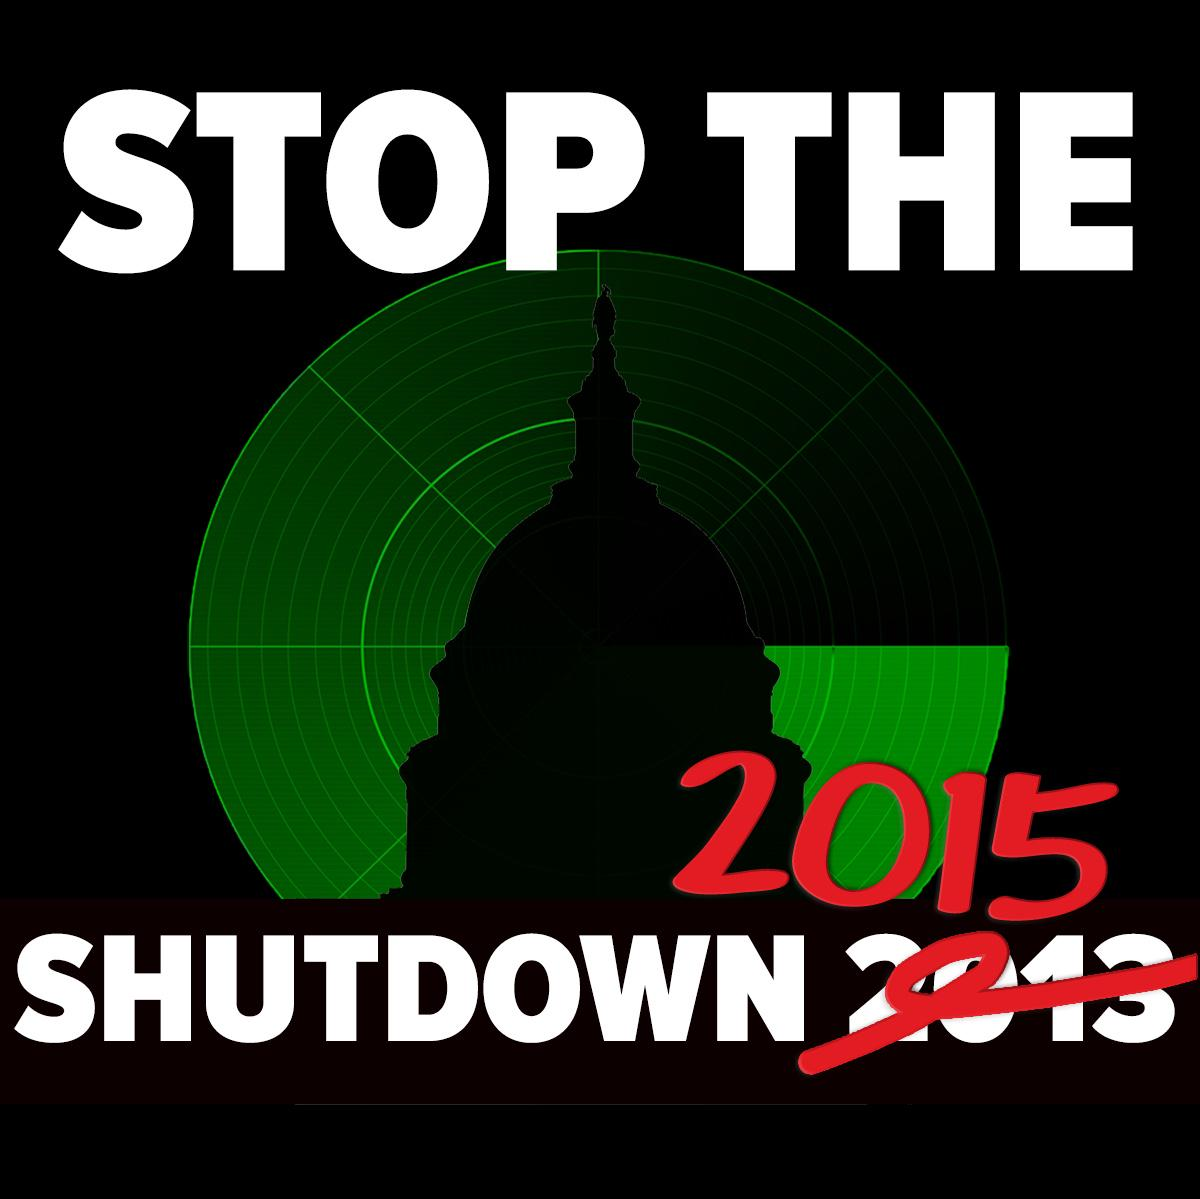 Retweet if you agree Congress should not let the government shut down, again. #StopTheShutdown #WeAreAllEssential http://t.co/D8ohmWzJU2